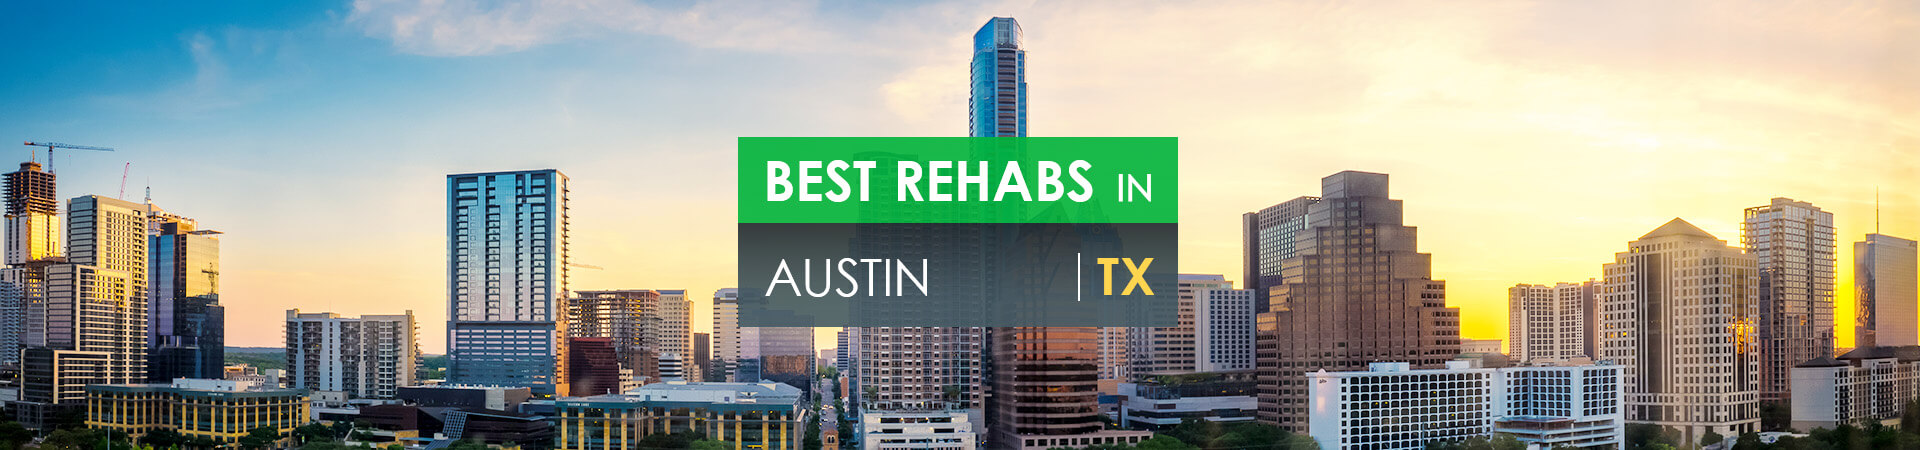 Best rehabs in Austin, TX